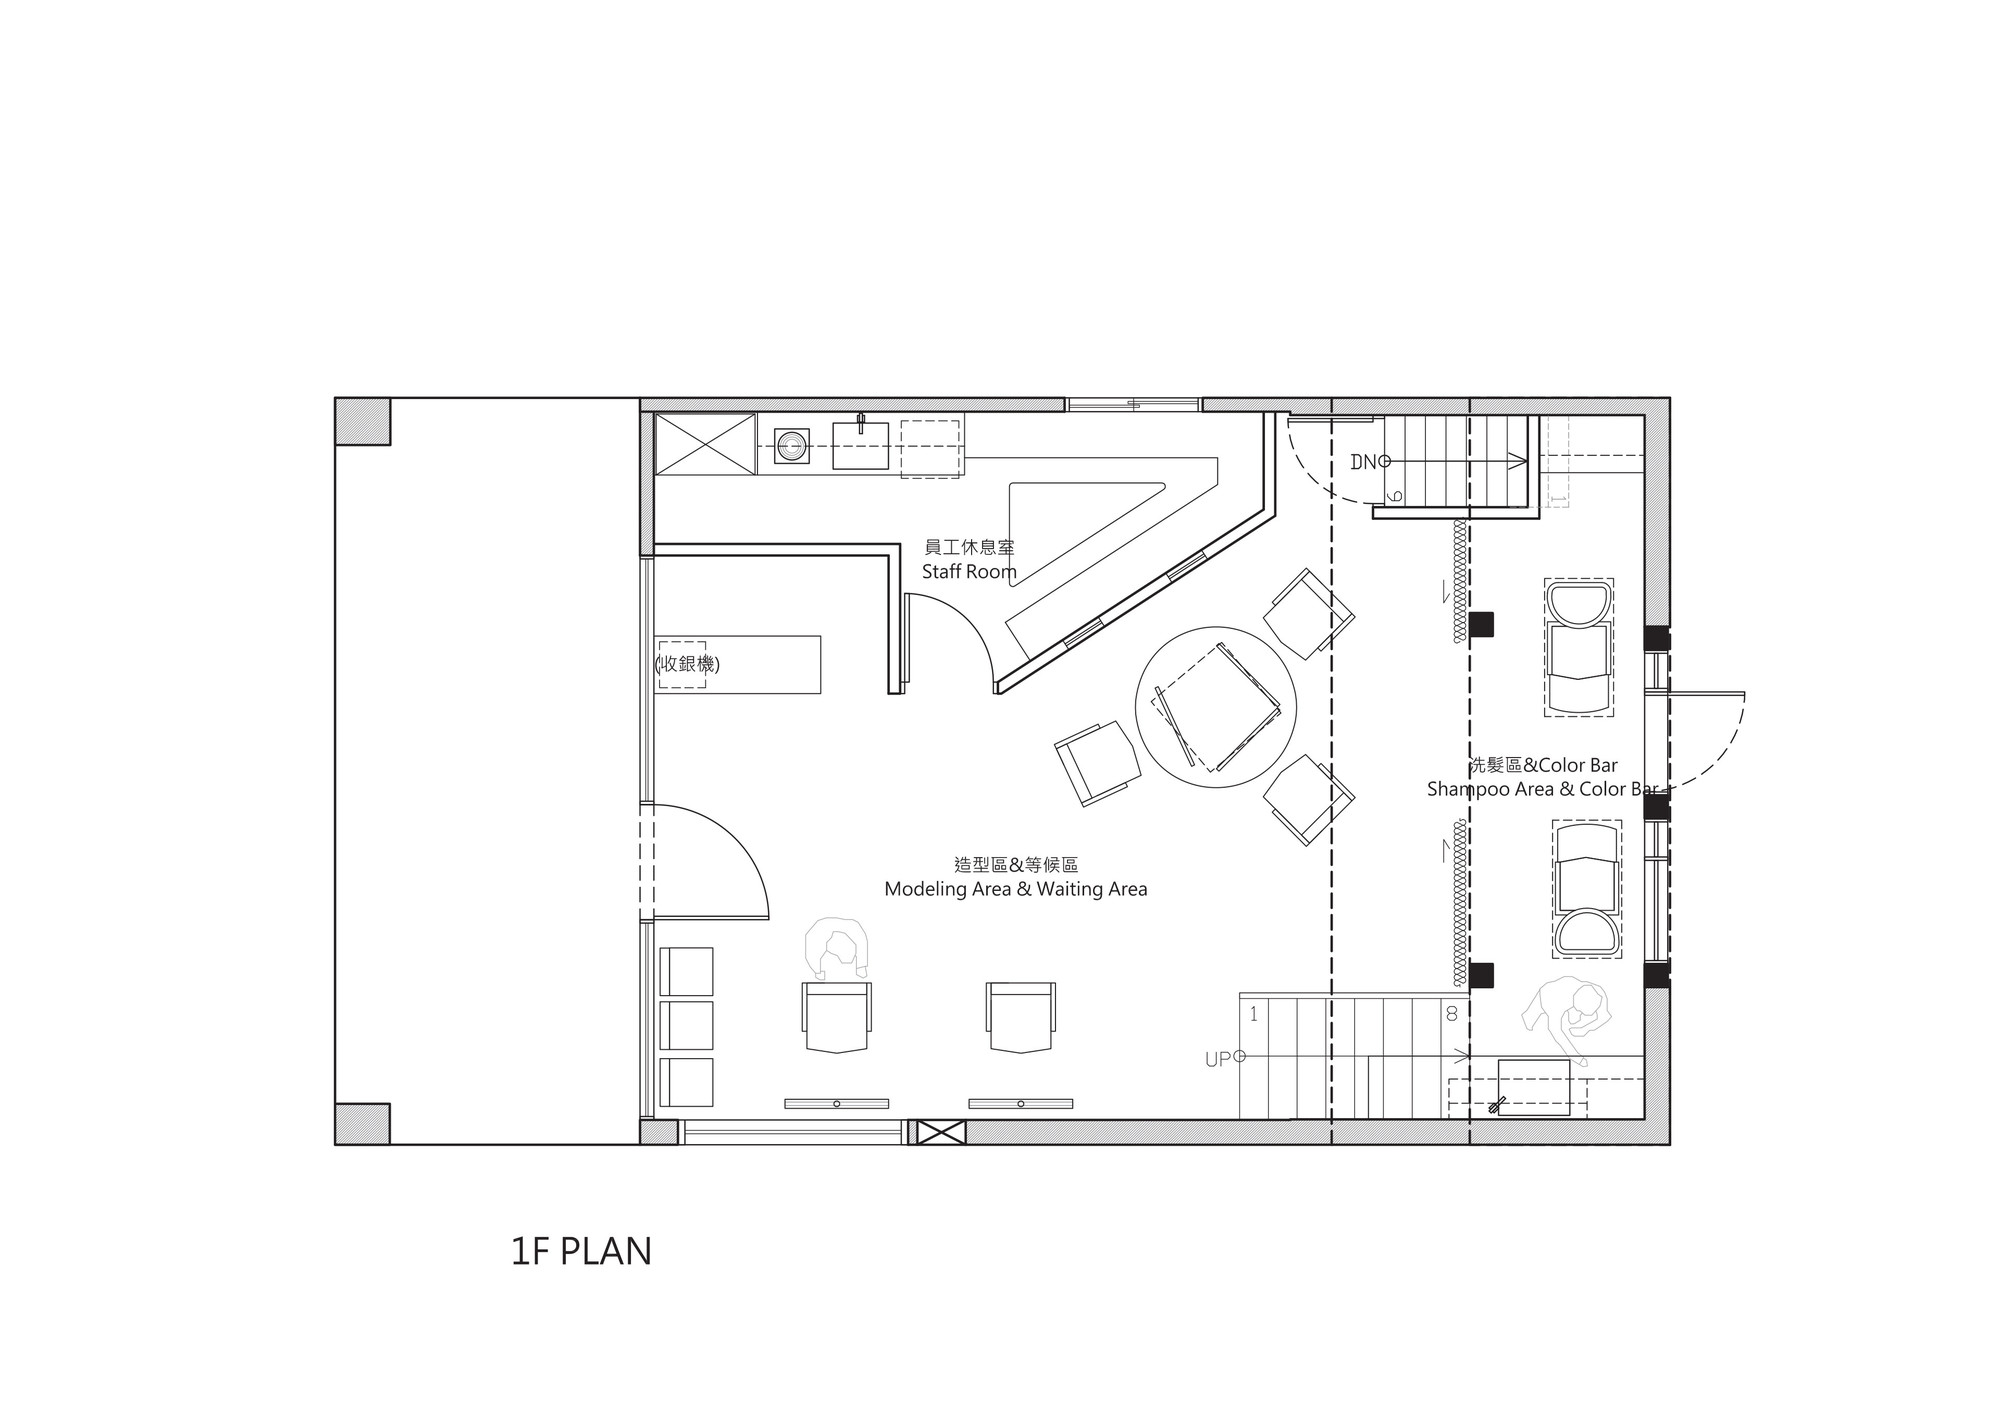 Hair salon floor plan design joy studio design gallery for Salon floor plans free